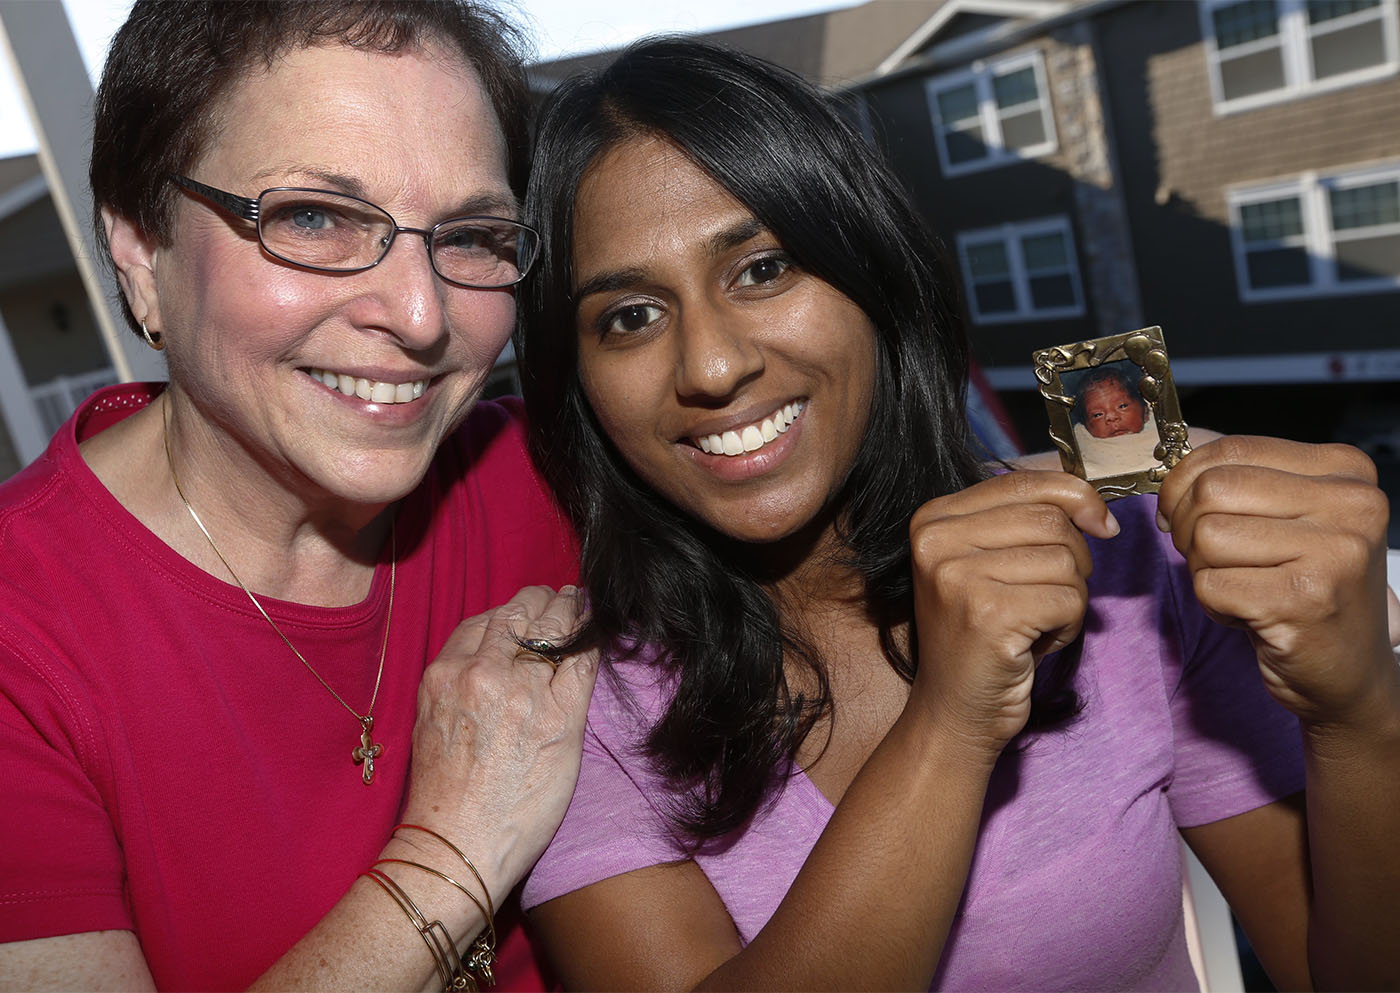 Lynette Grandits and her adopted daughter Rachel, 23, holding a photo of herself as an infant, at her East Amherst apartment on Monday, Aug. 29, 2016. (Robert Kirkham/Buffalo News)